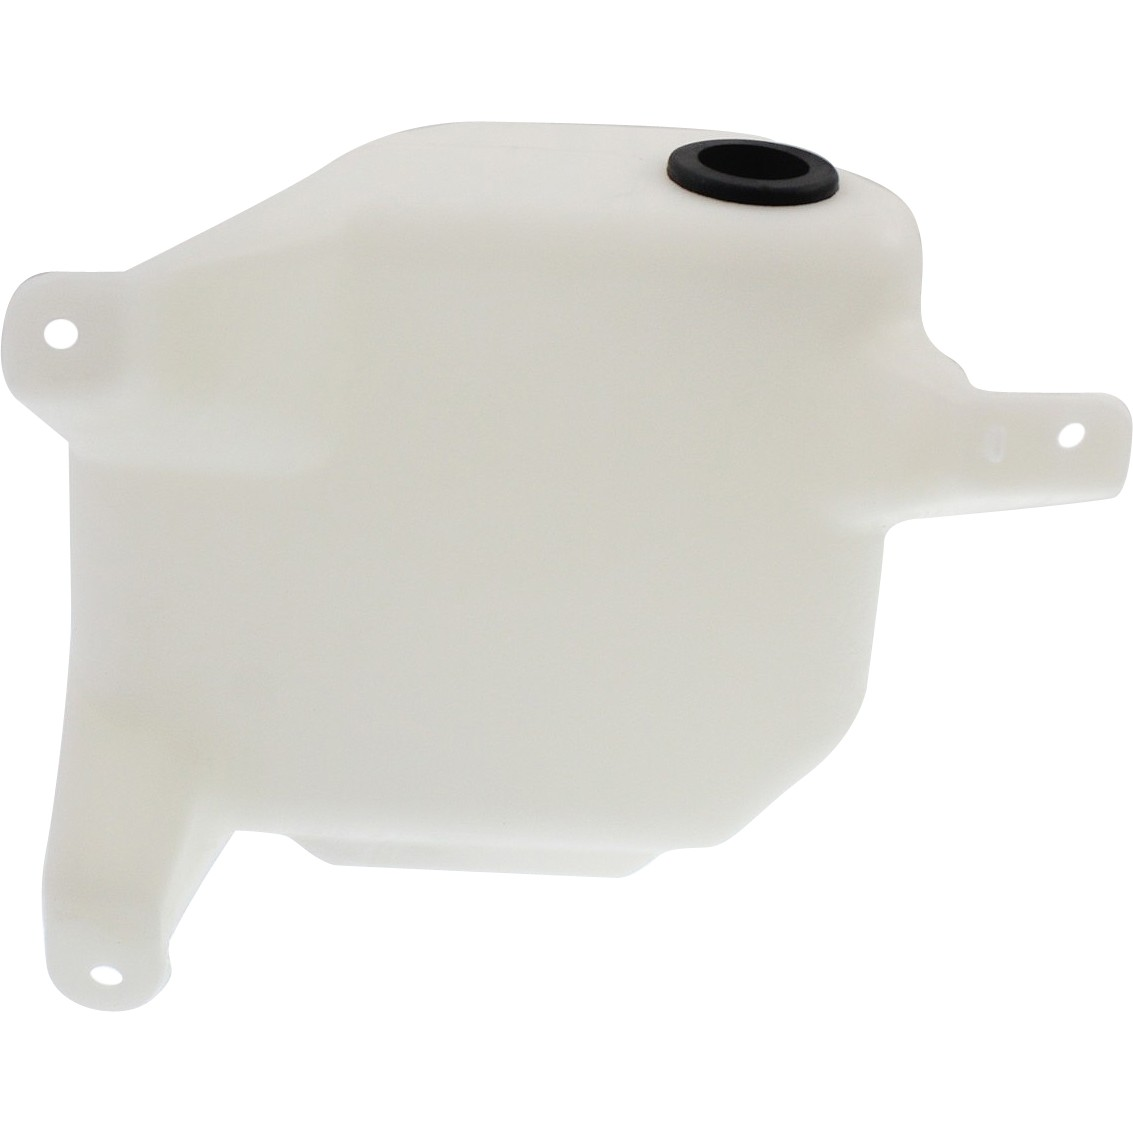 Washer Reservoir For 2004-2008 Acura TSX With Pump